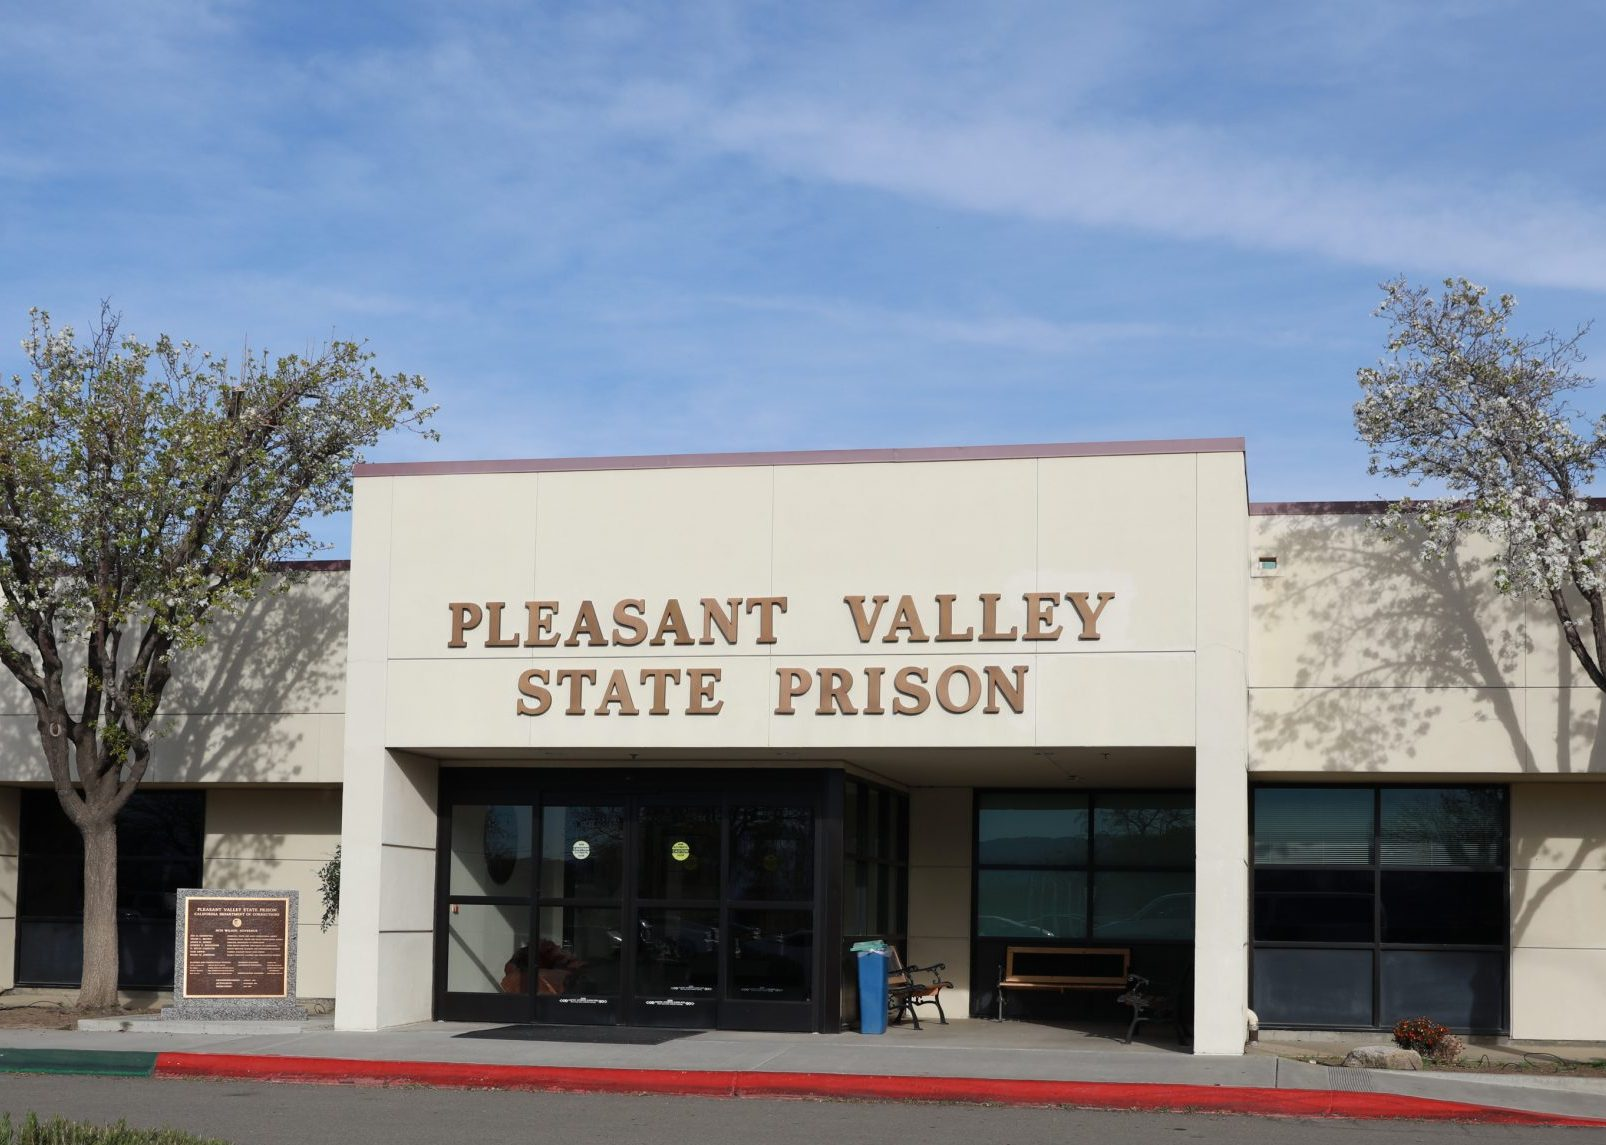 Pleasant Valley State Prison administration building.